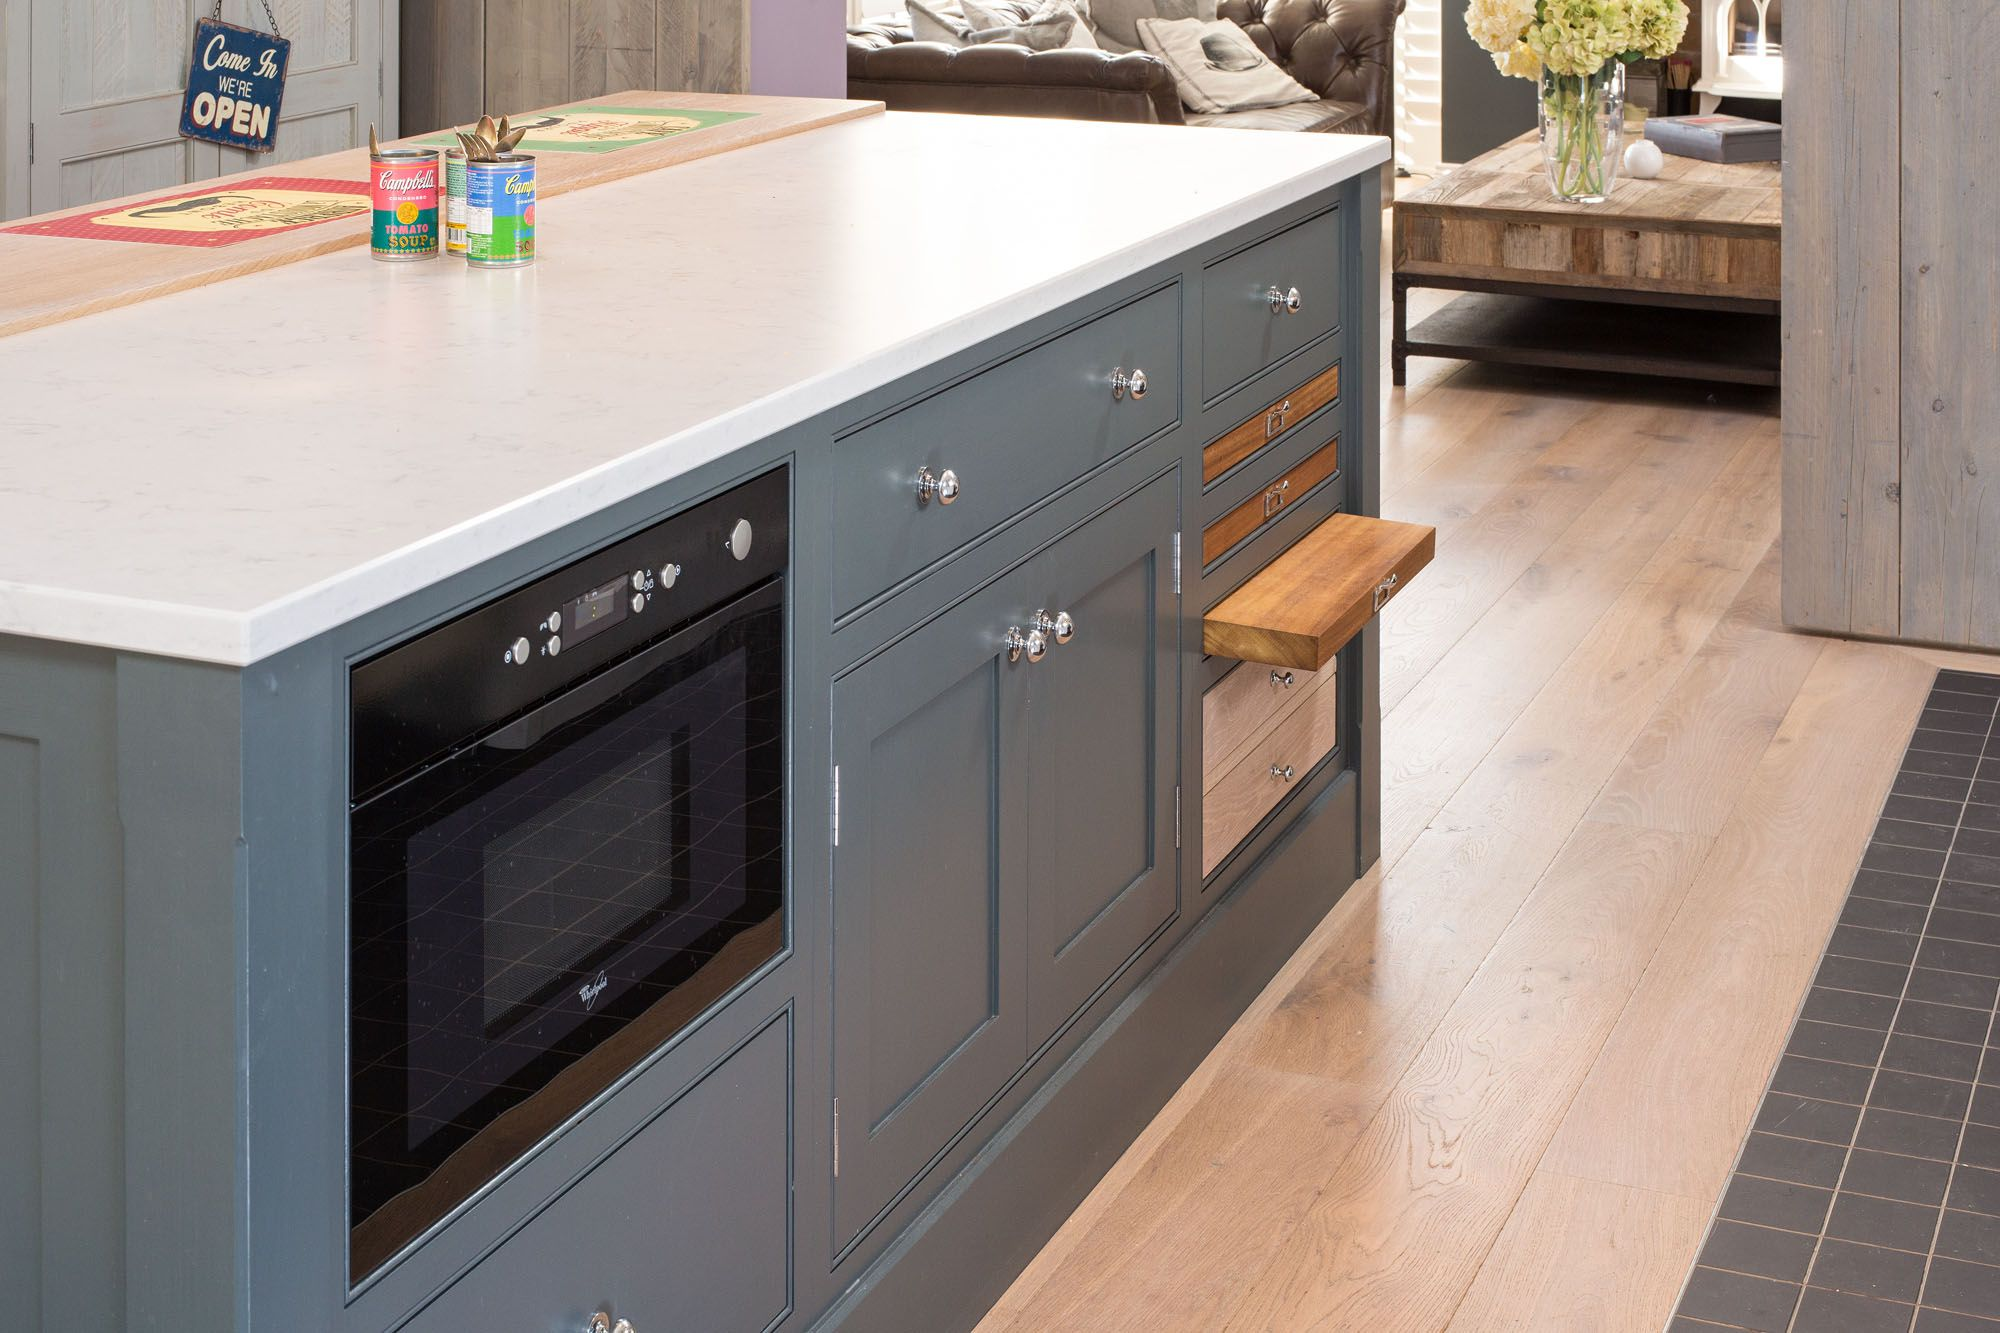 The island unit was painted in Farrow & Ball \'Down Pipe\' while the ...